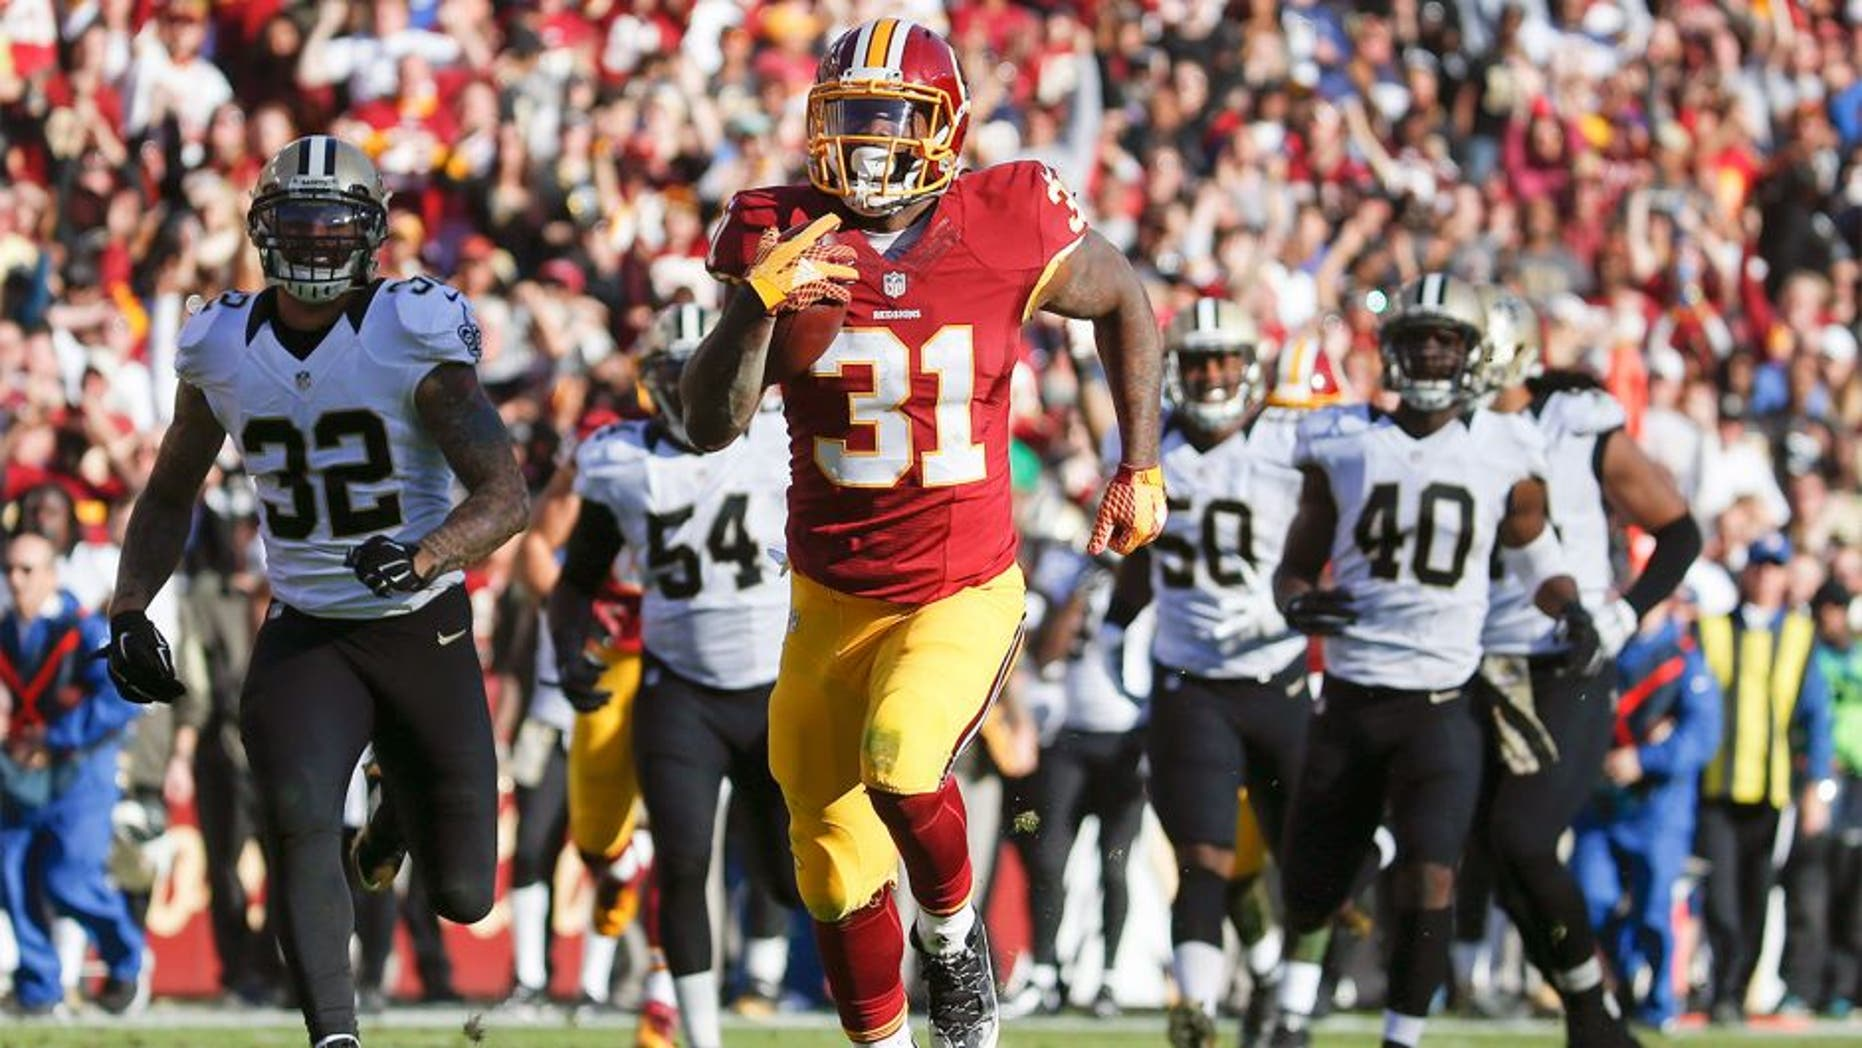 Washington Redskins running back Matt Jones (31) outpaces the New Orleans Saints defense to score a 78 yard touchdown during the first half of an NFL football game in Landover, Md., Sunday, Nov. 15, 2015. (AP Photo/Evan Vucci)